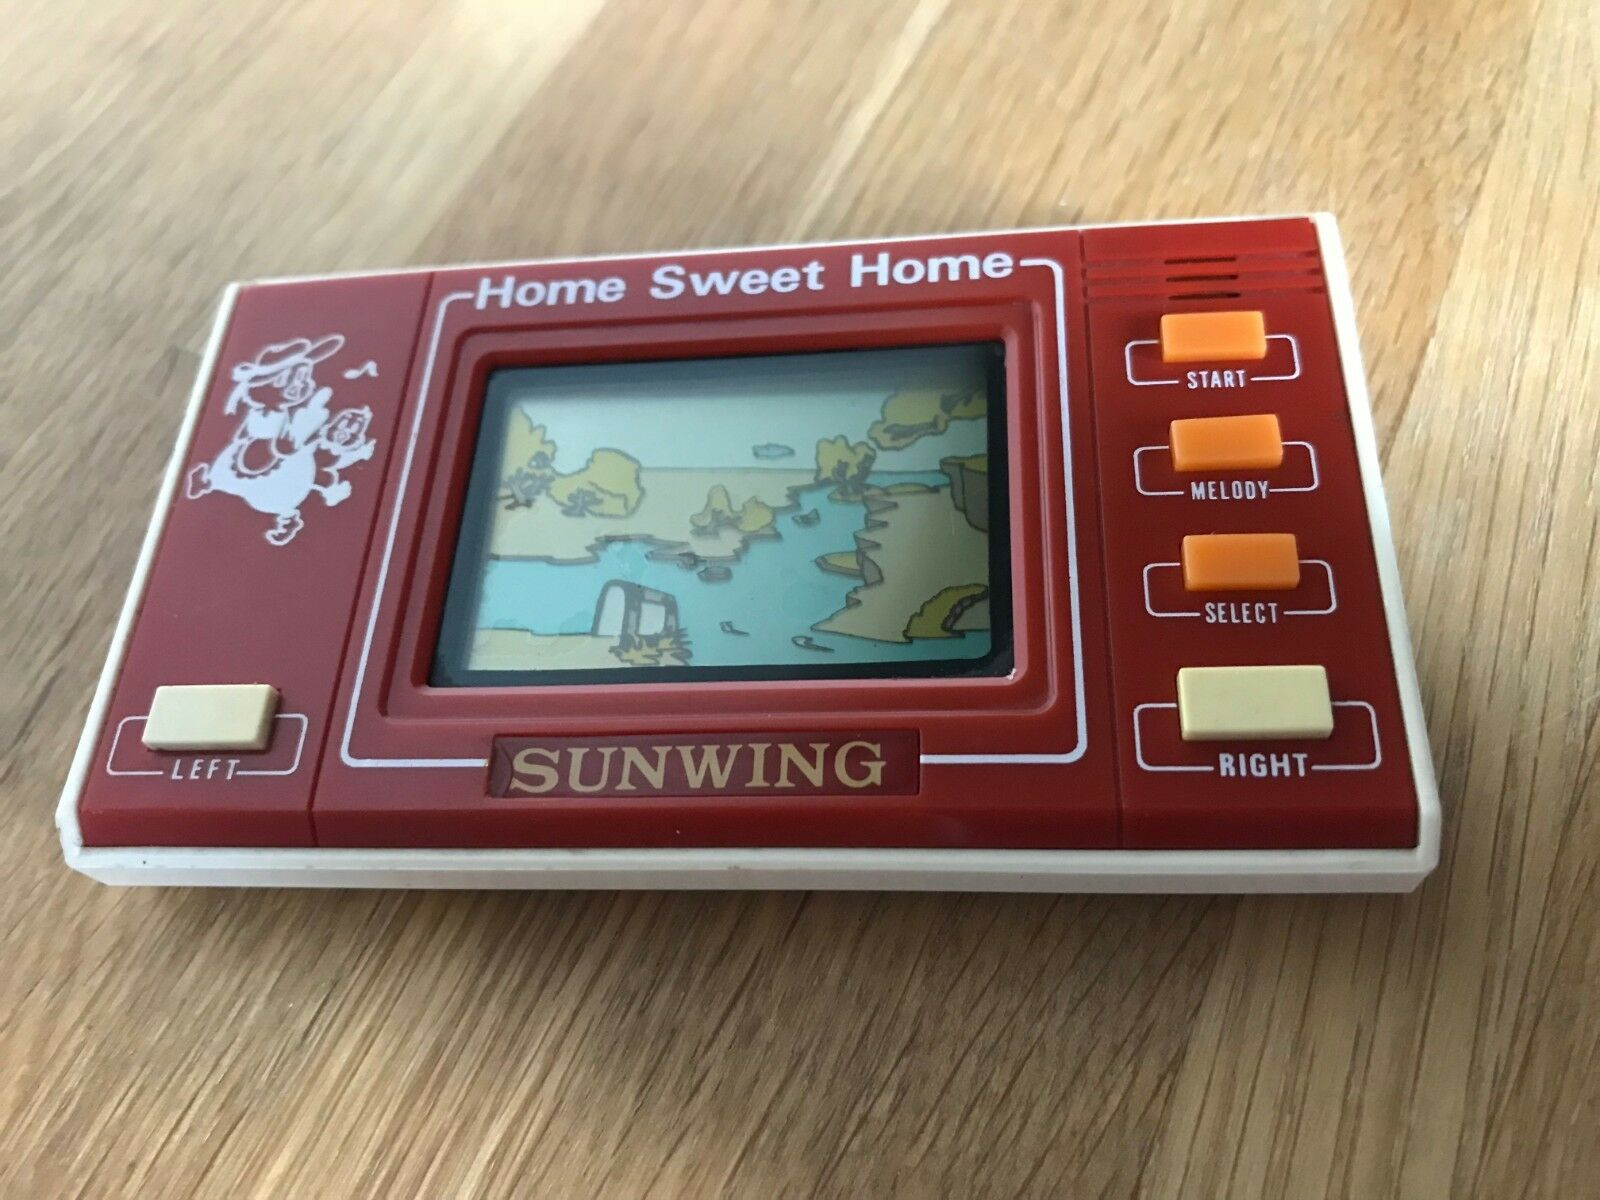 Rare Sunwing Home Home Home Sweet Home 1980's Vintage LCD Handheld Electronic Game in VGC. 587f8e